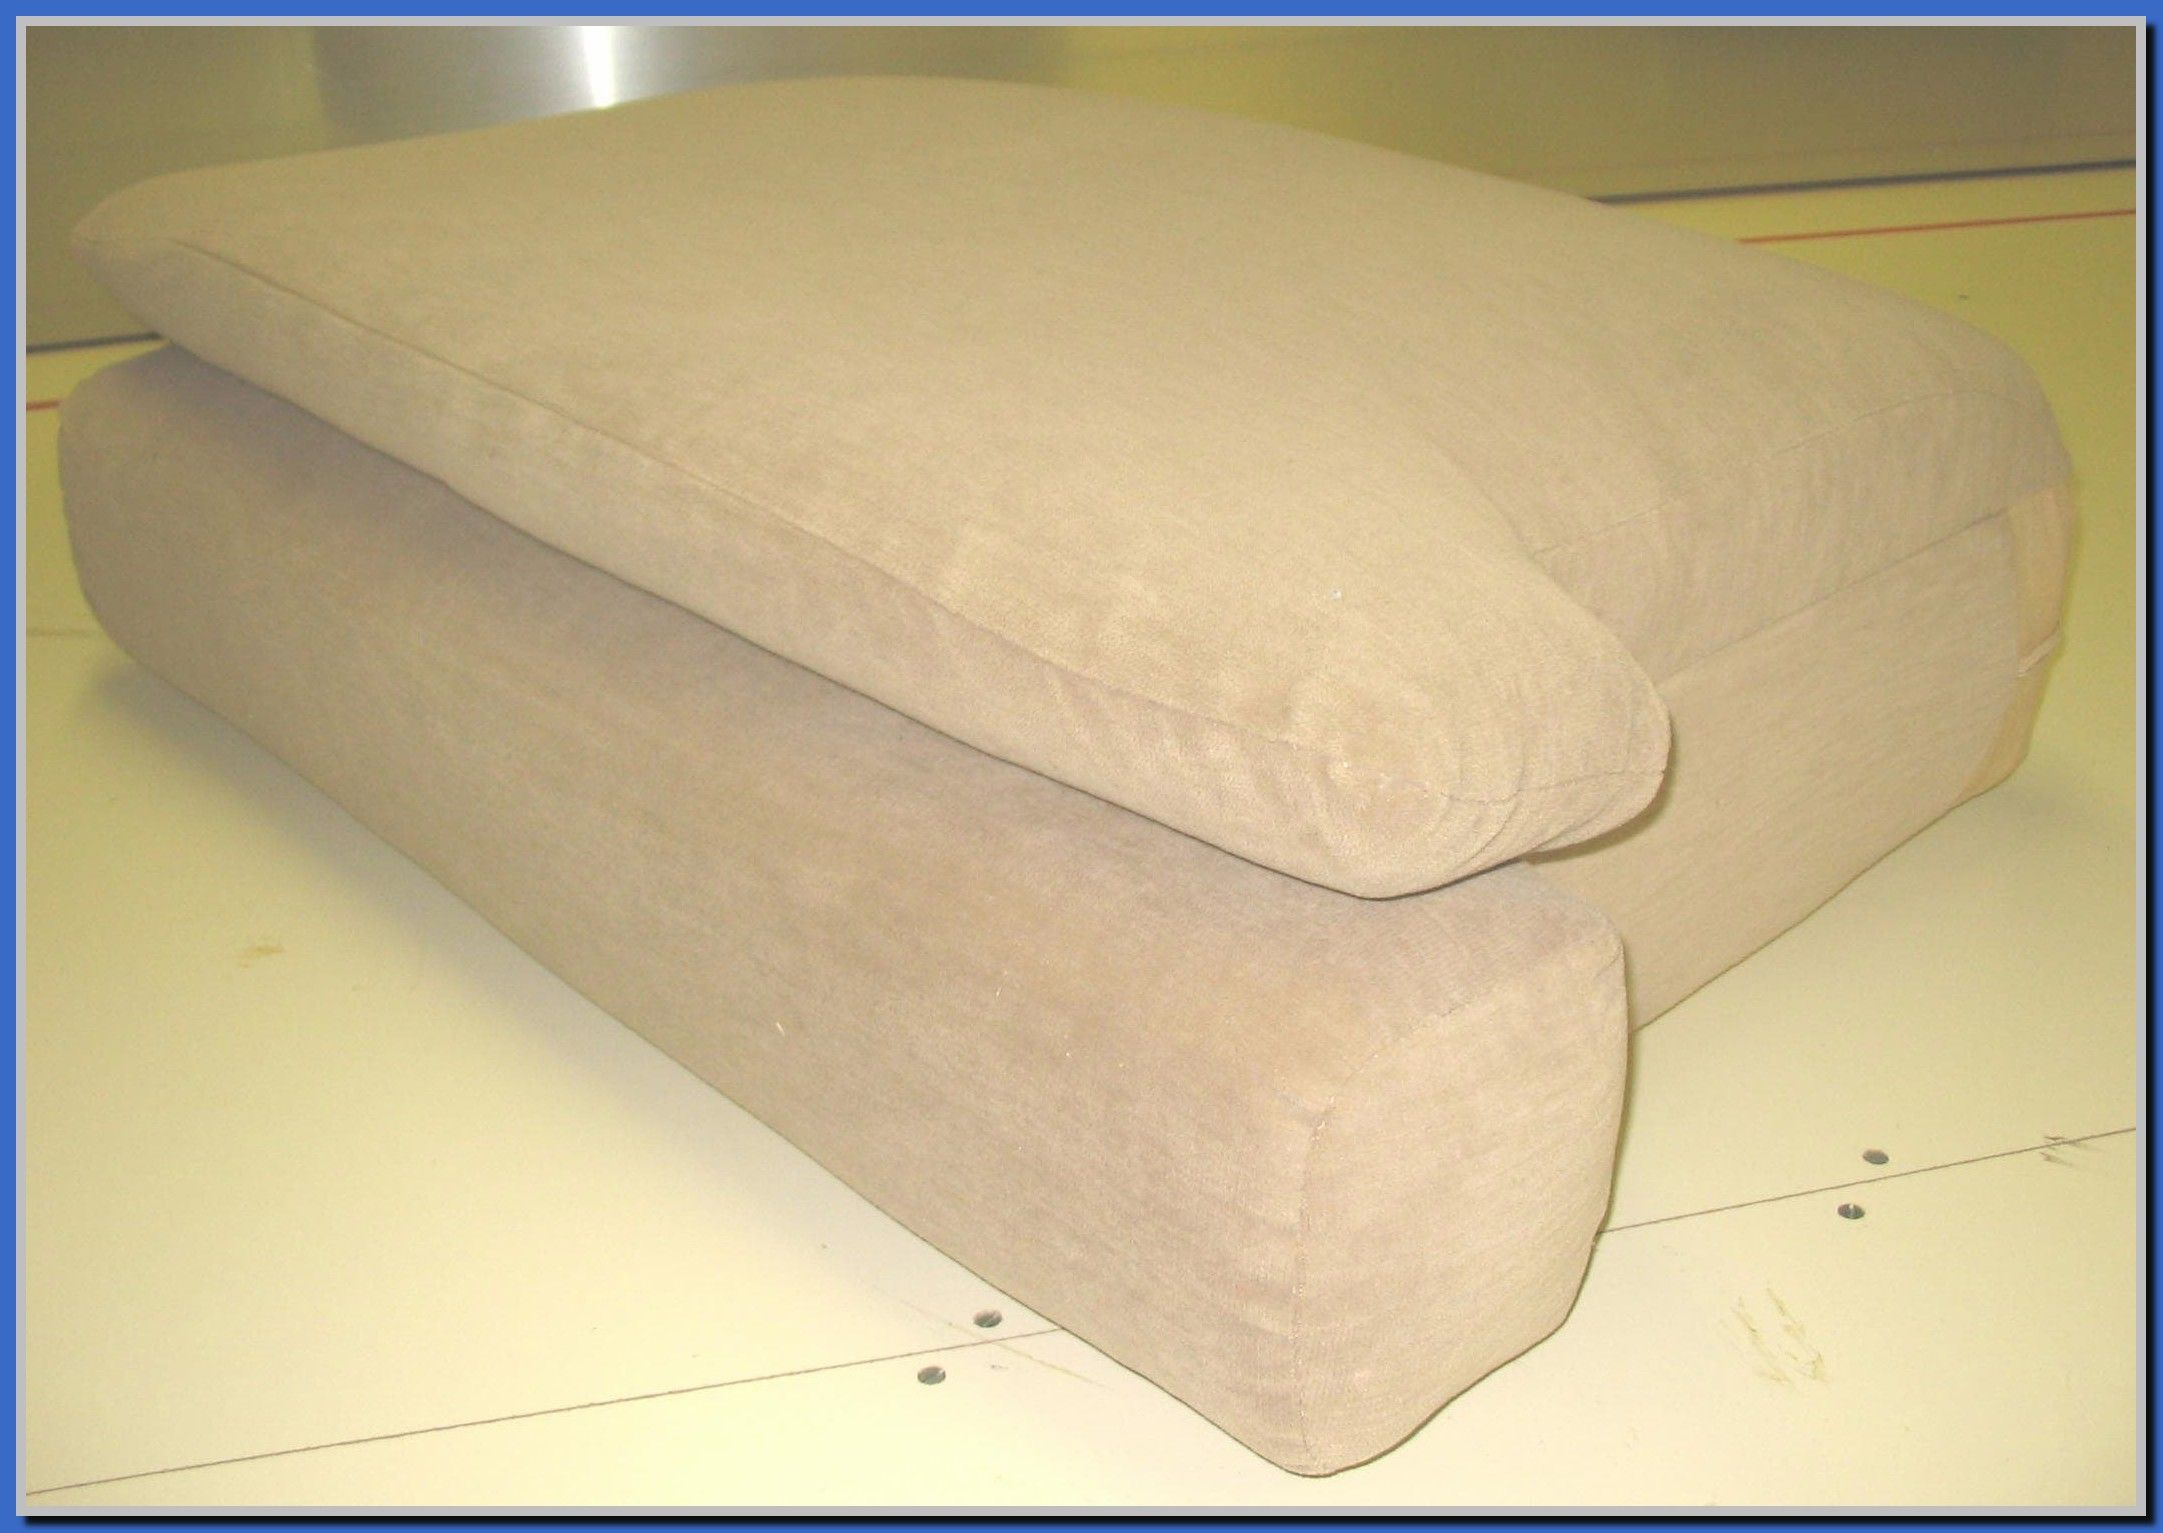 116 Reference Of Custom Couch Cushions Replacement In 2020 Cushions On Sofa Custom Couches Couch Cushion Foam